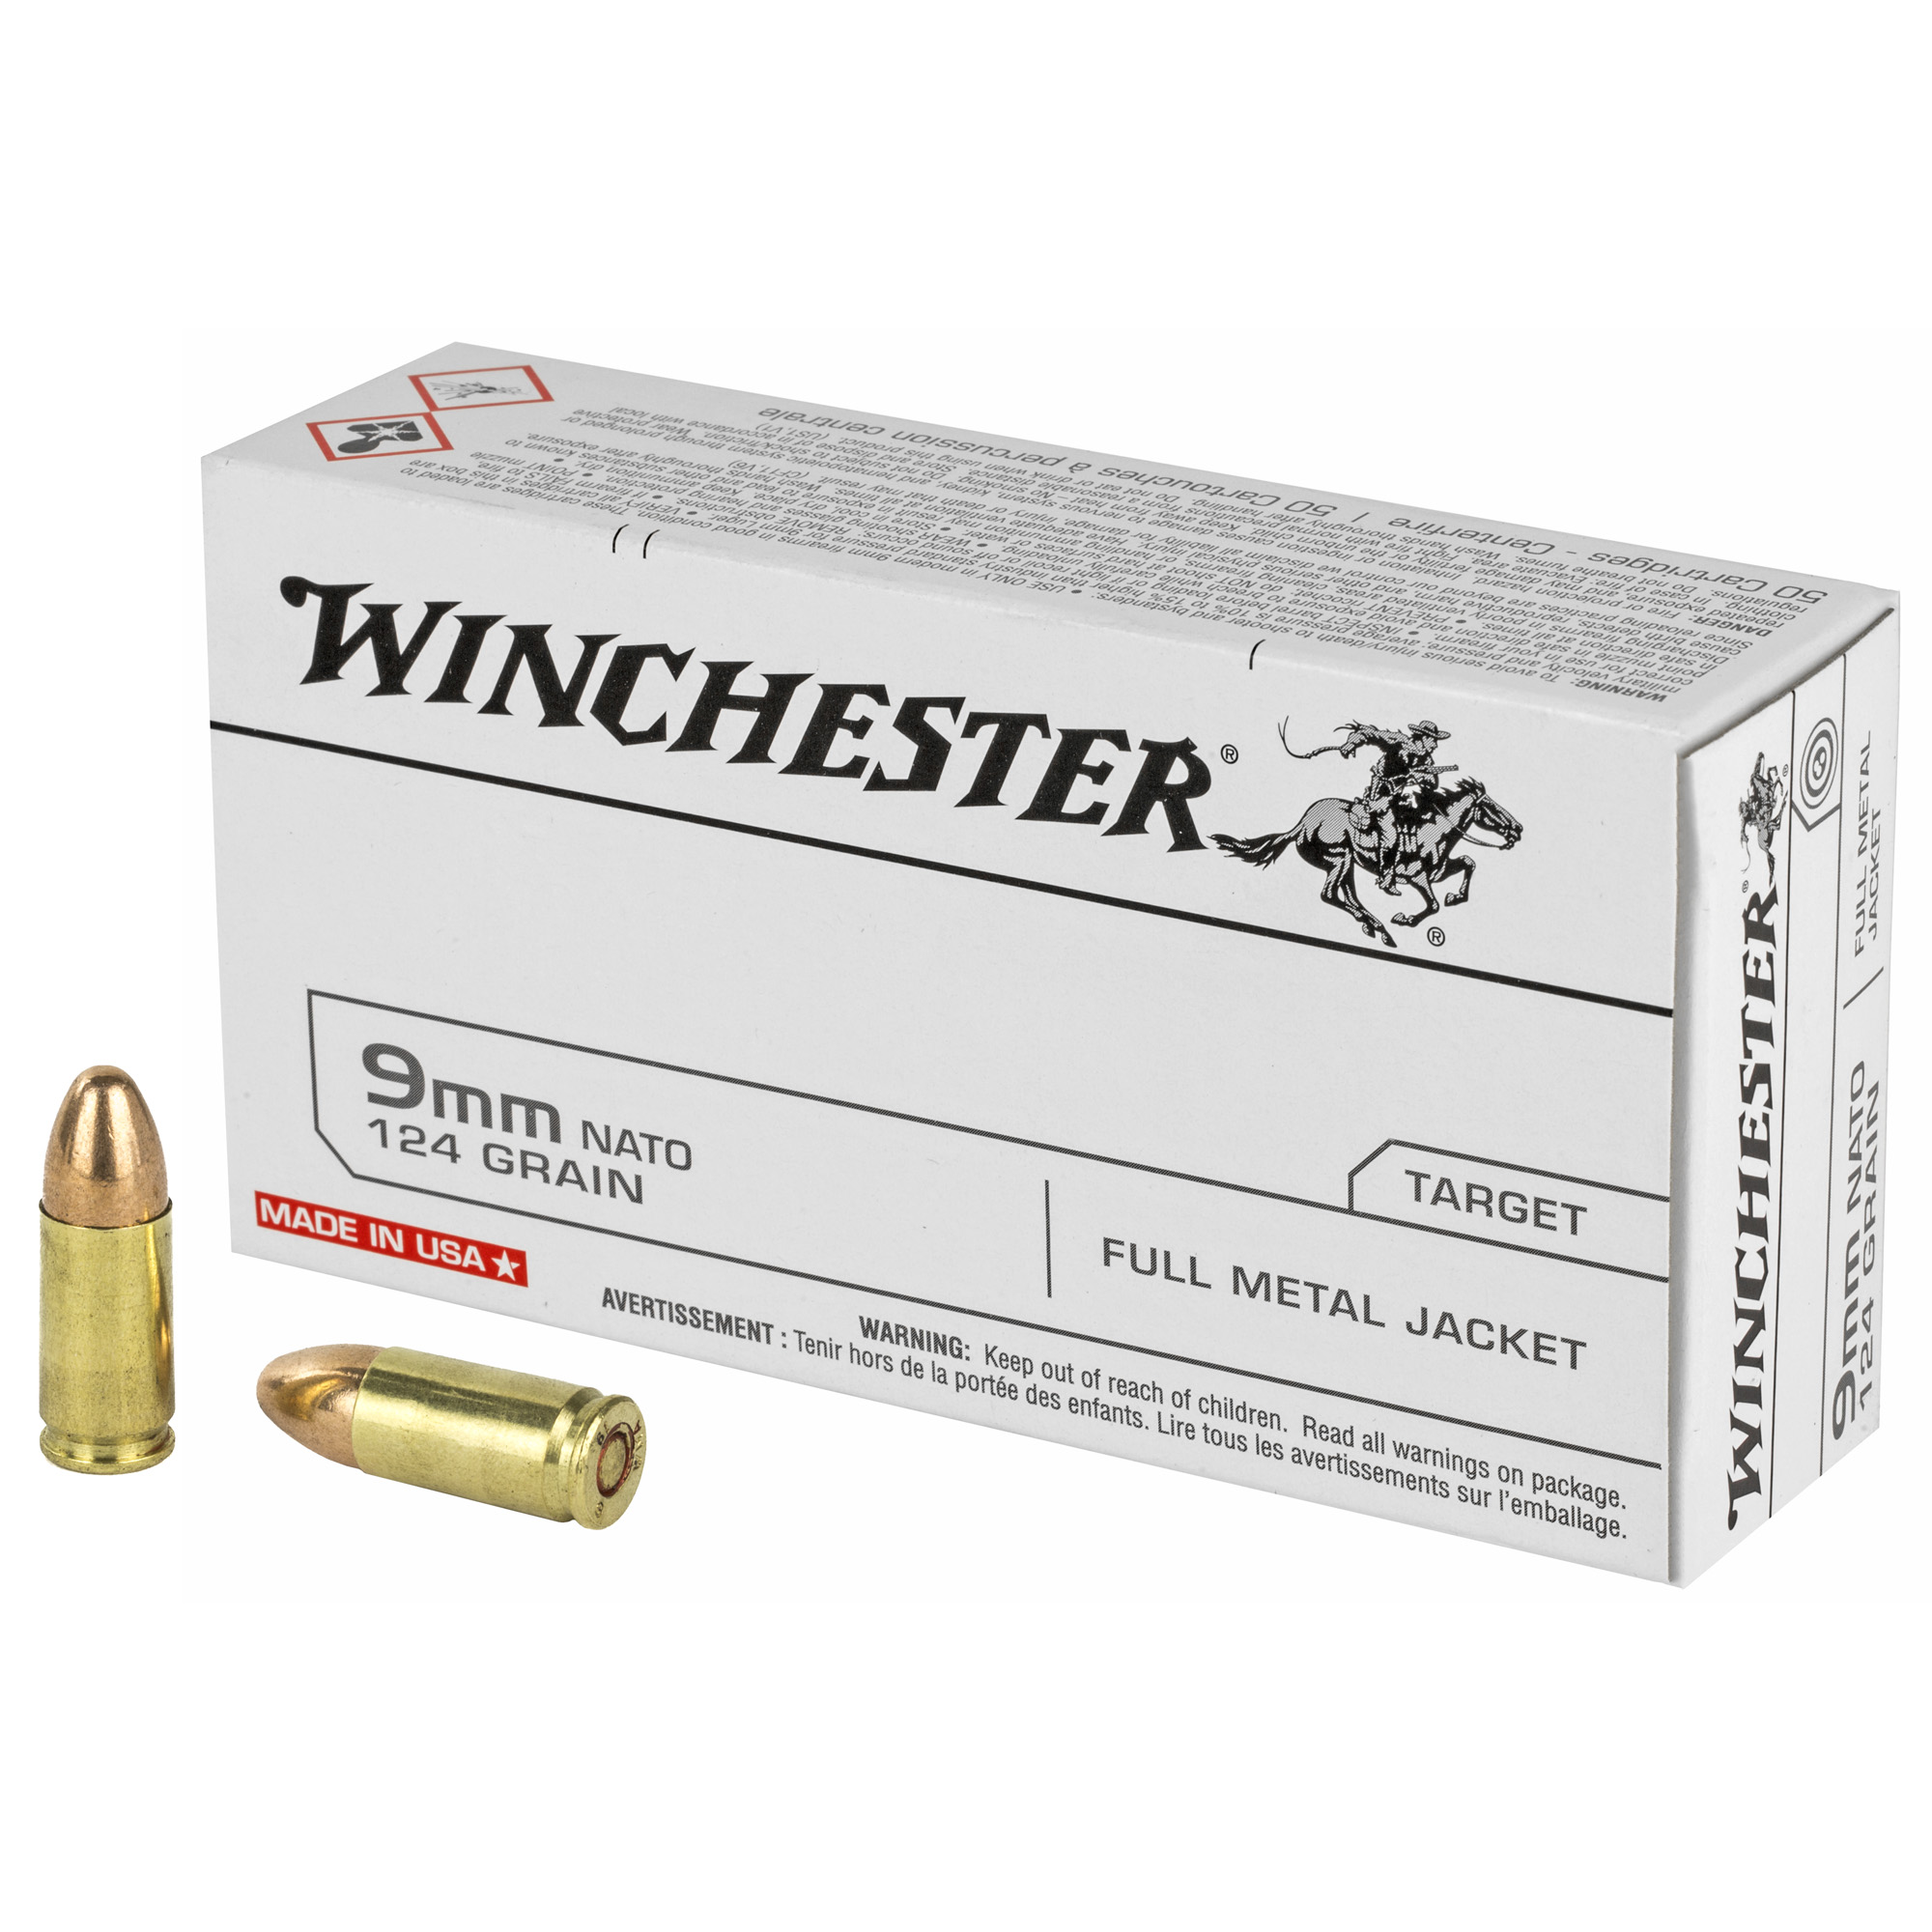 Winchester Ammo Q4318 USA 9mm NATO 124 gr Full Metal Jacket (FMJ) 50 Box